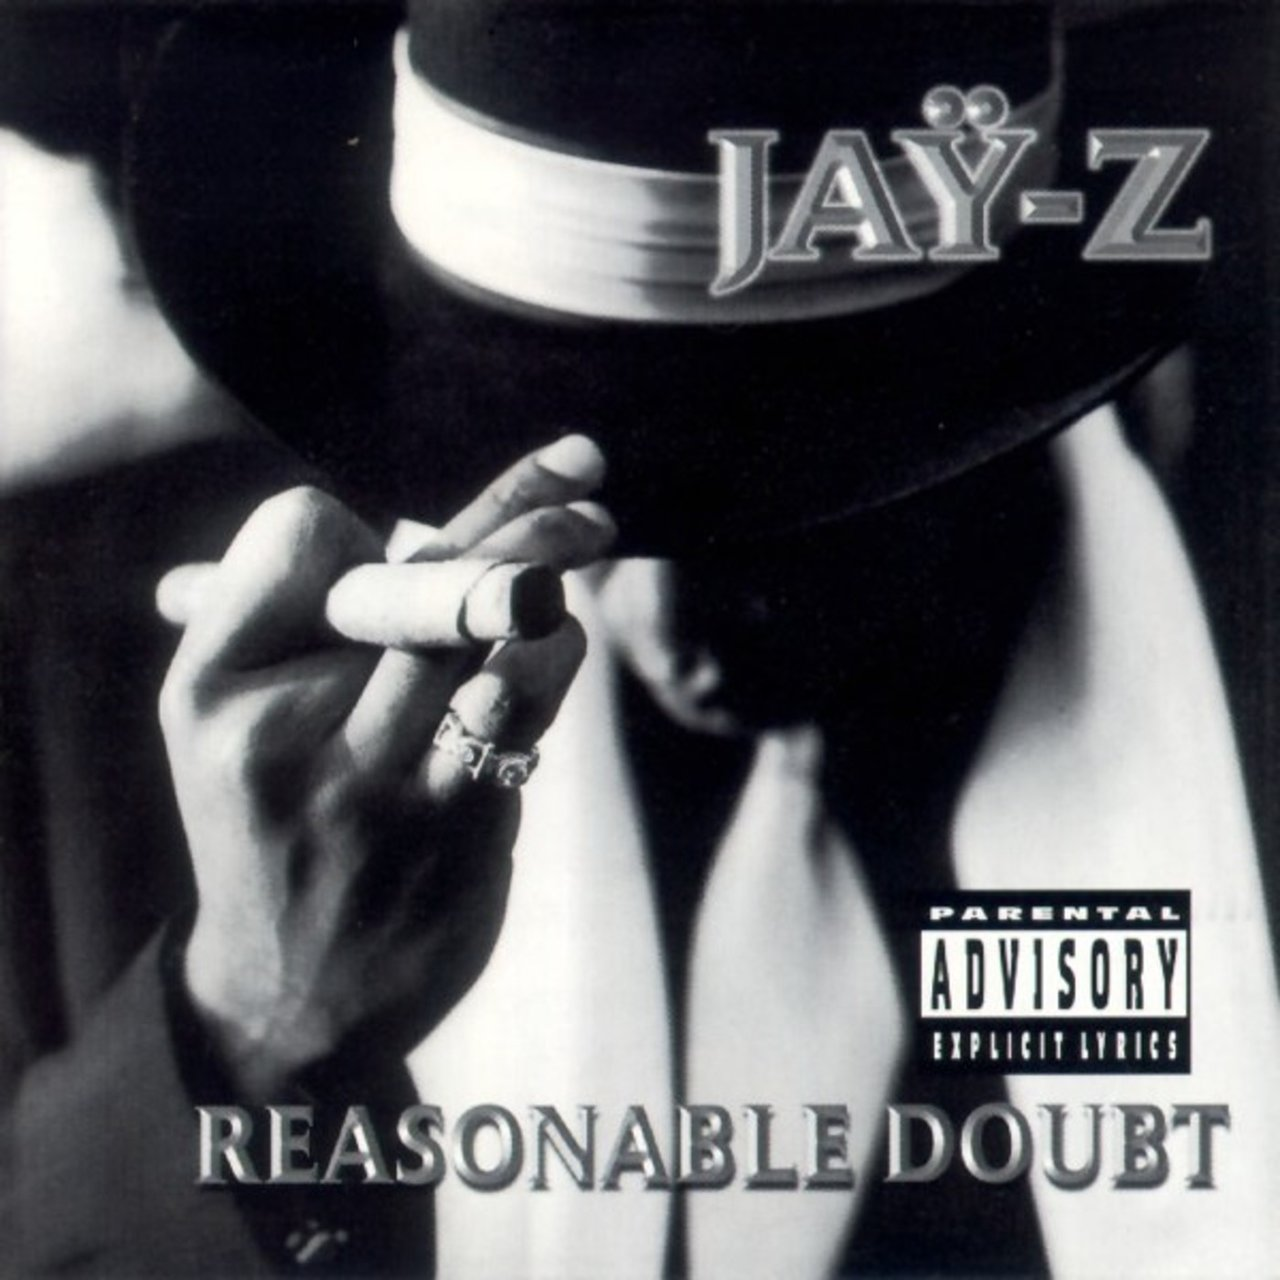 Reasonable doubt jay z tidal malvernweather Image collections